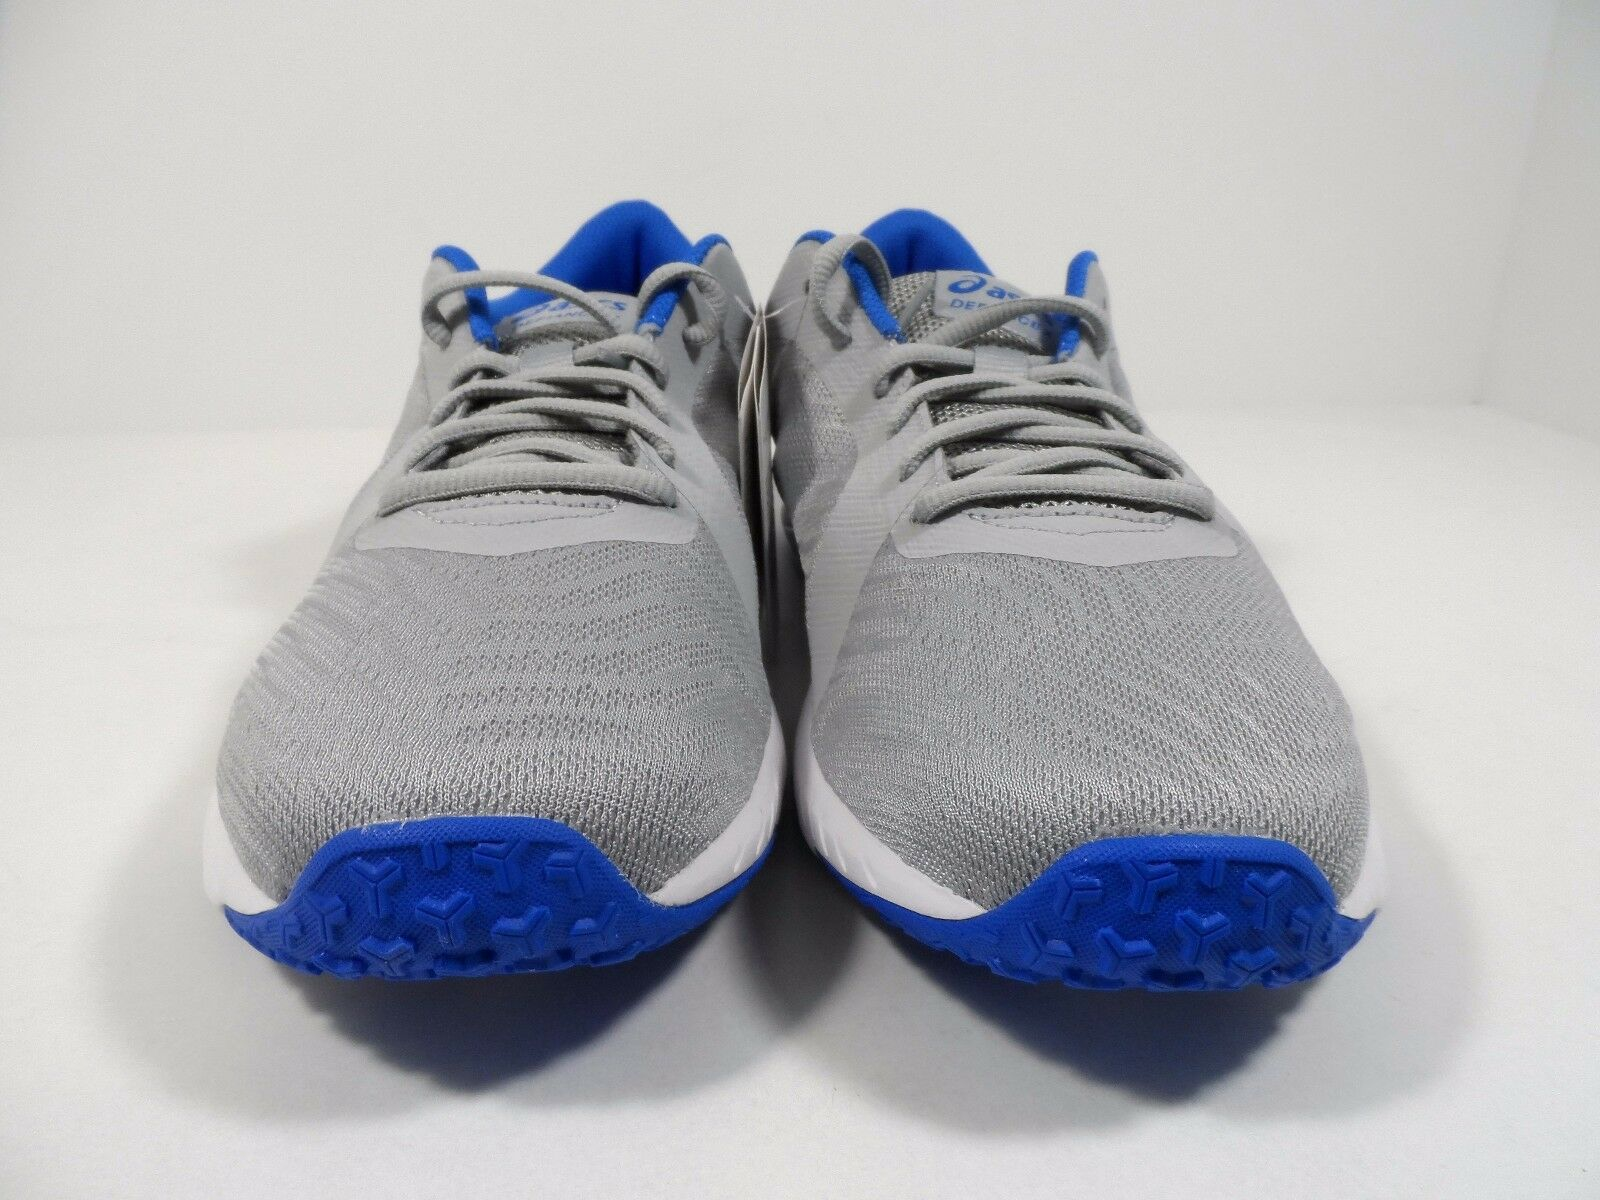 ASICS Men's Defiance X CrossTrainer-shoes CrossTrainer-shoes CrossTrainer-shoes Mid Grey Directoire bluee White Sz 10.5 06bb61